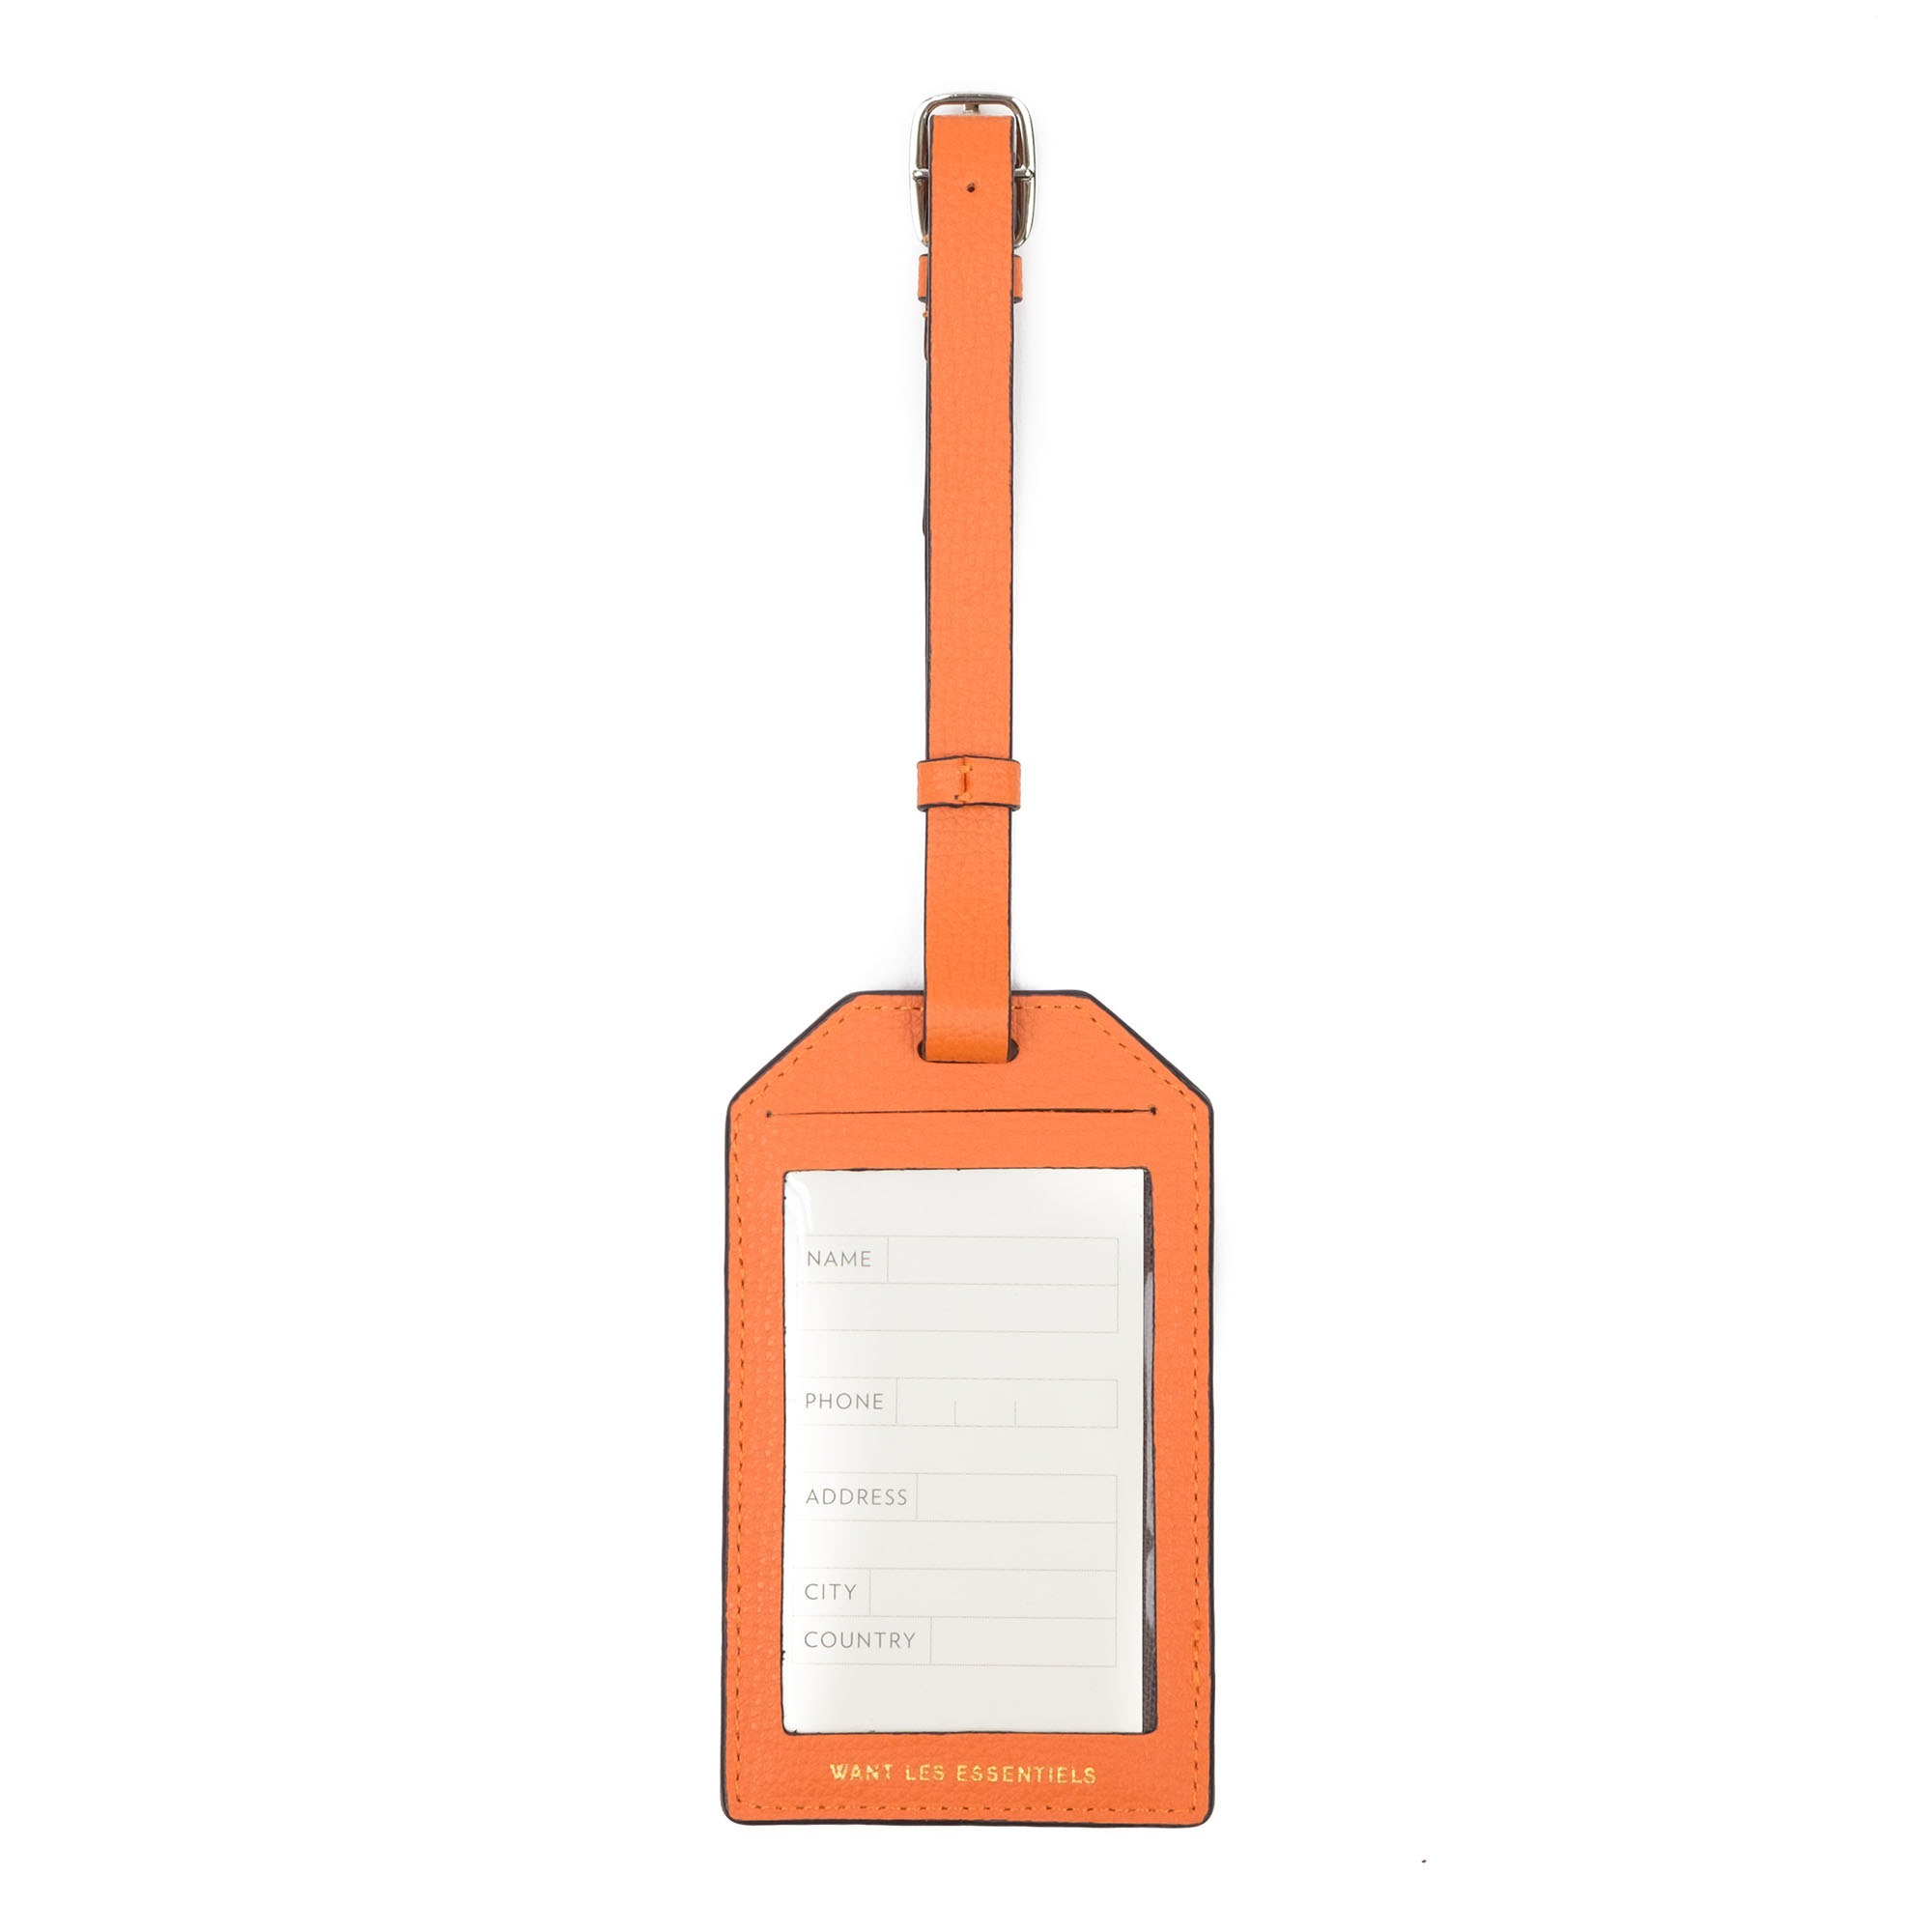 WANT Les Essentiels Changi Luggage Tag - Sunset grain